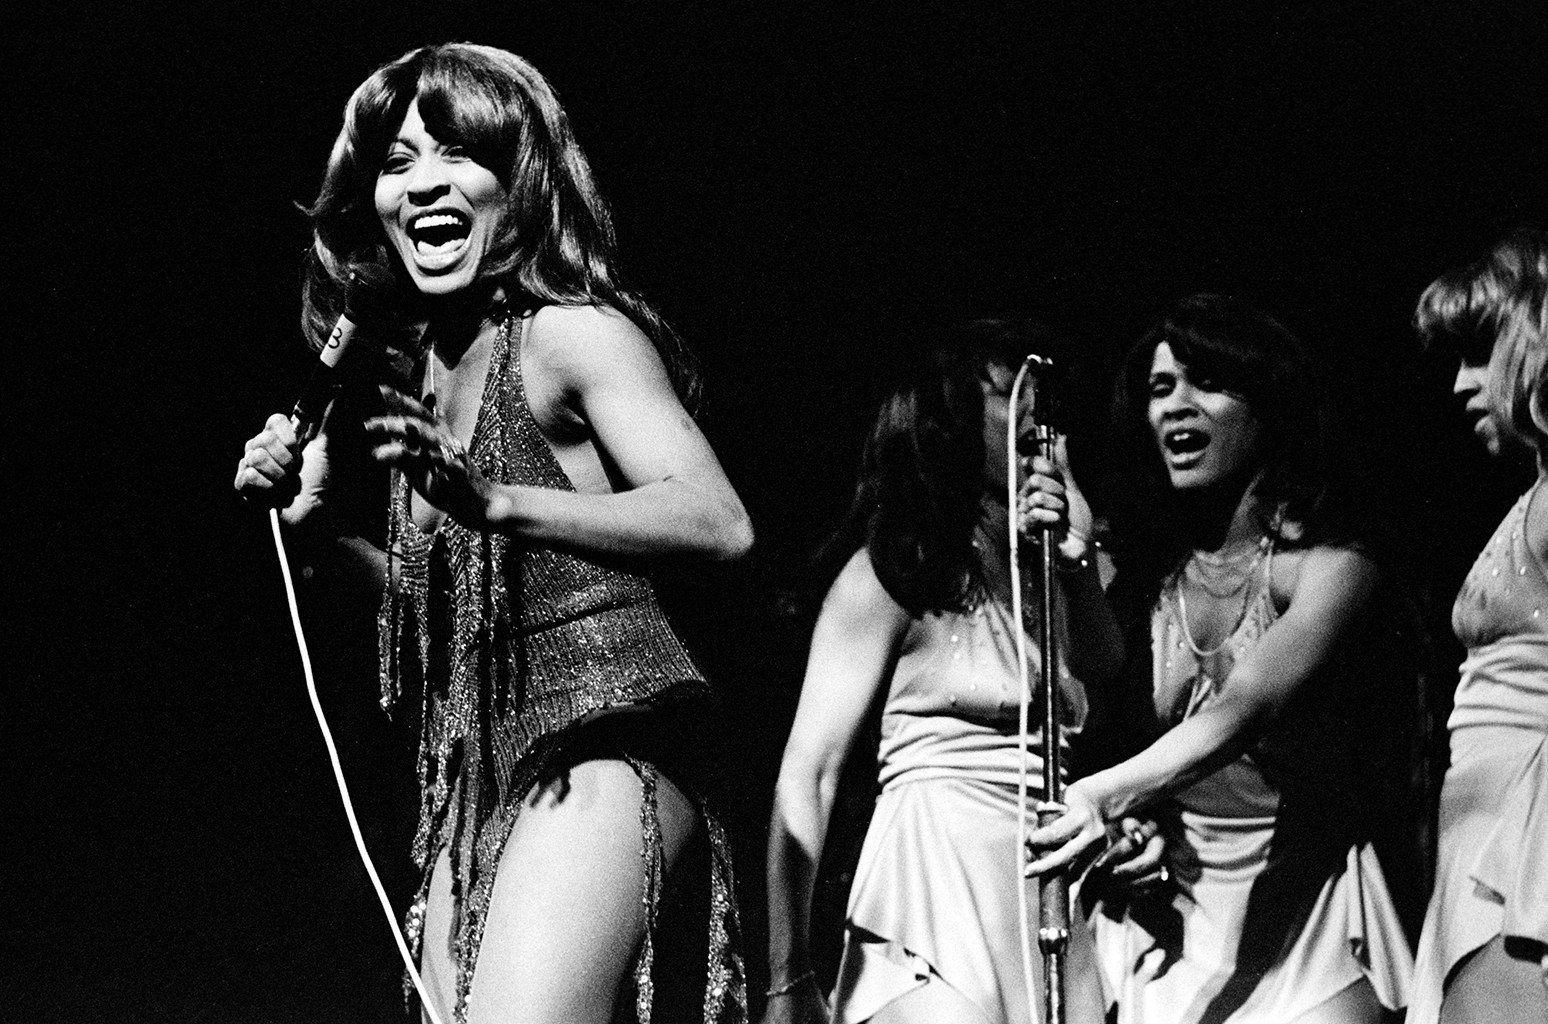 Tina Turner performs live on stage with the Ikettes at De Doelen in Rotterdam, Holland in 1971.